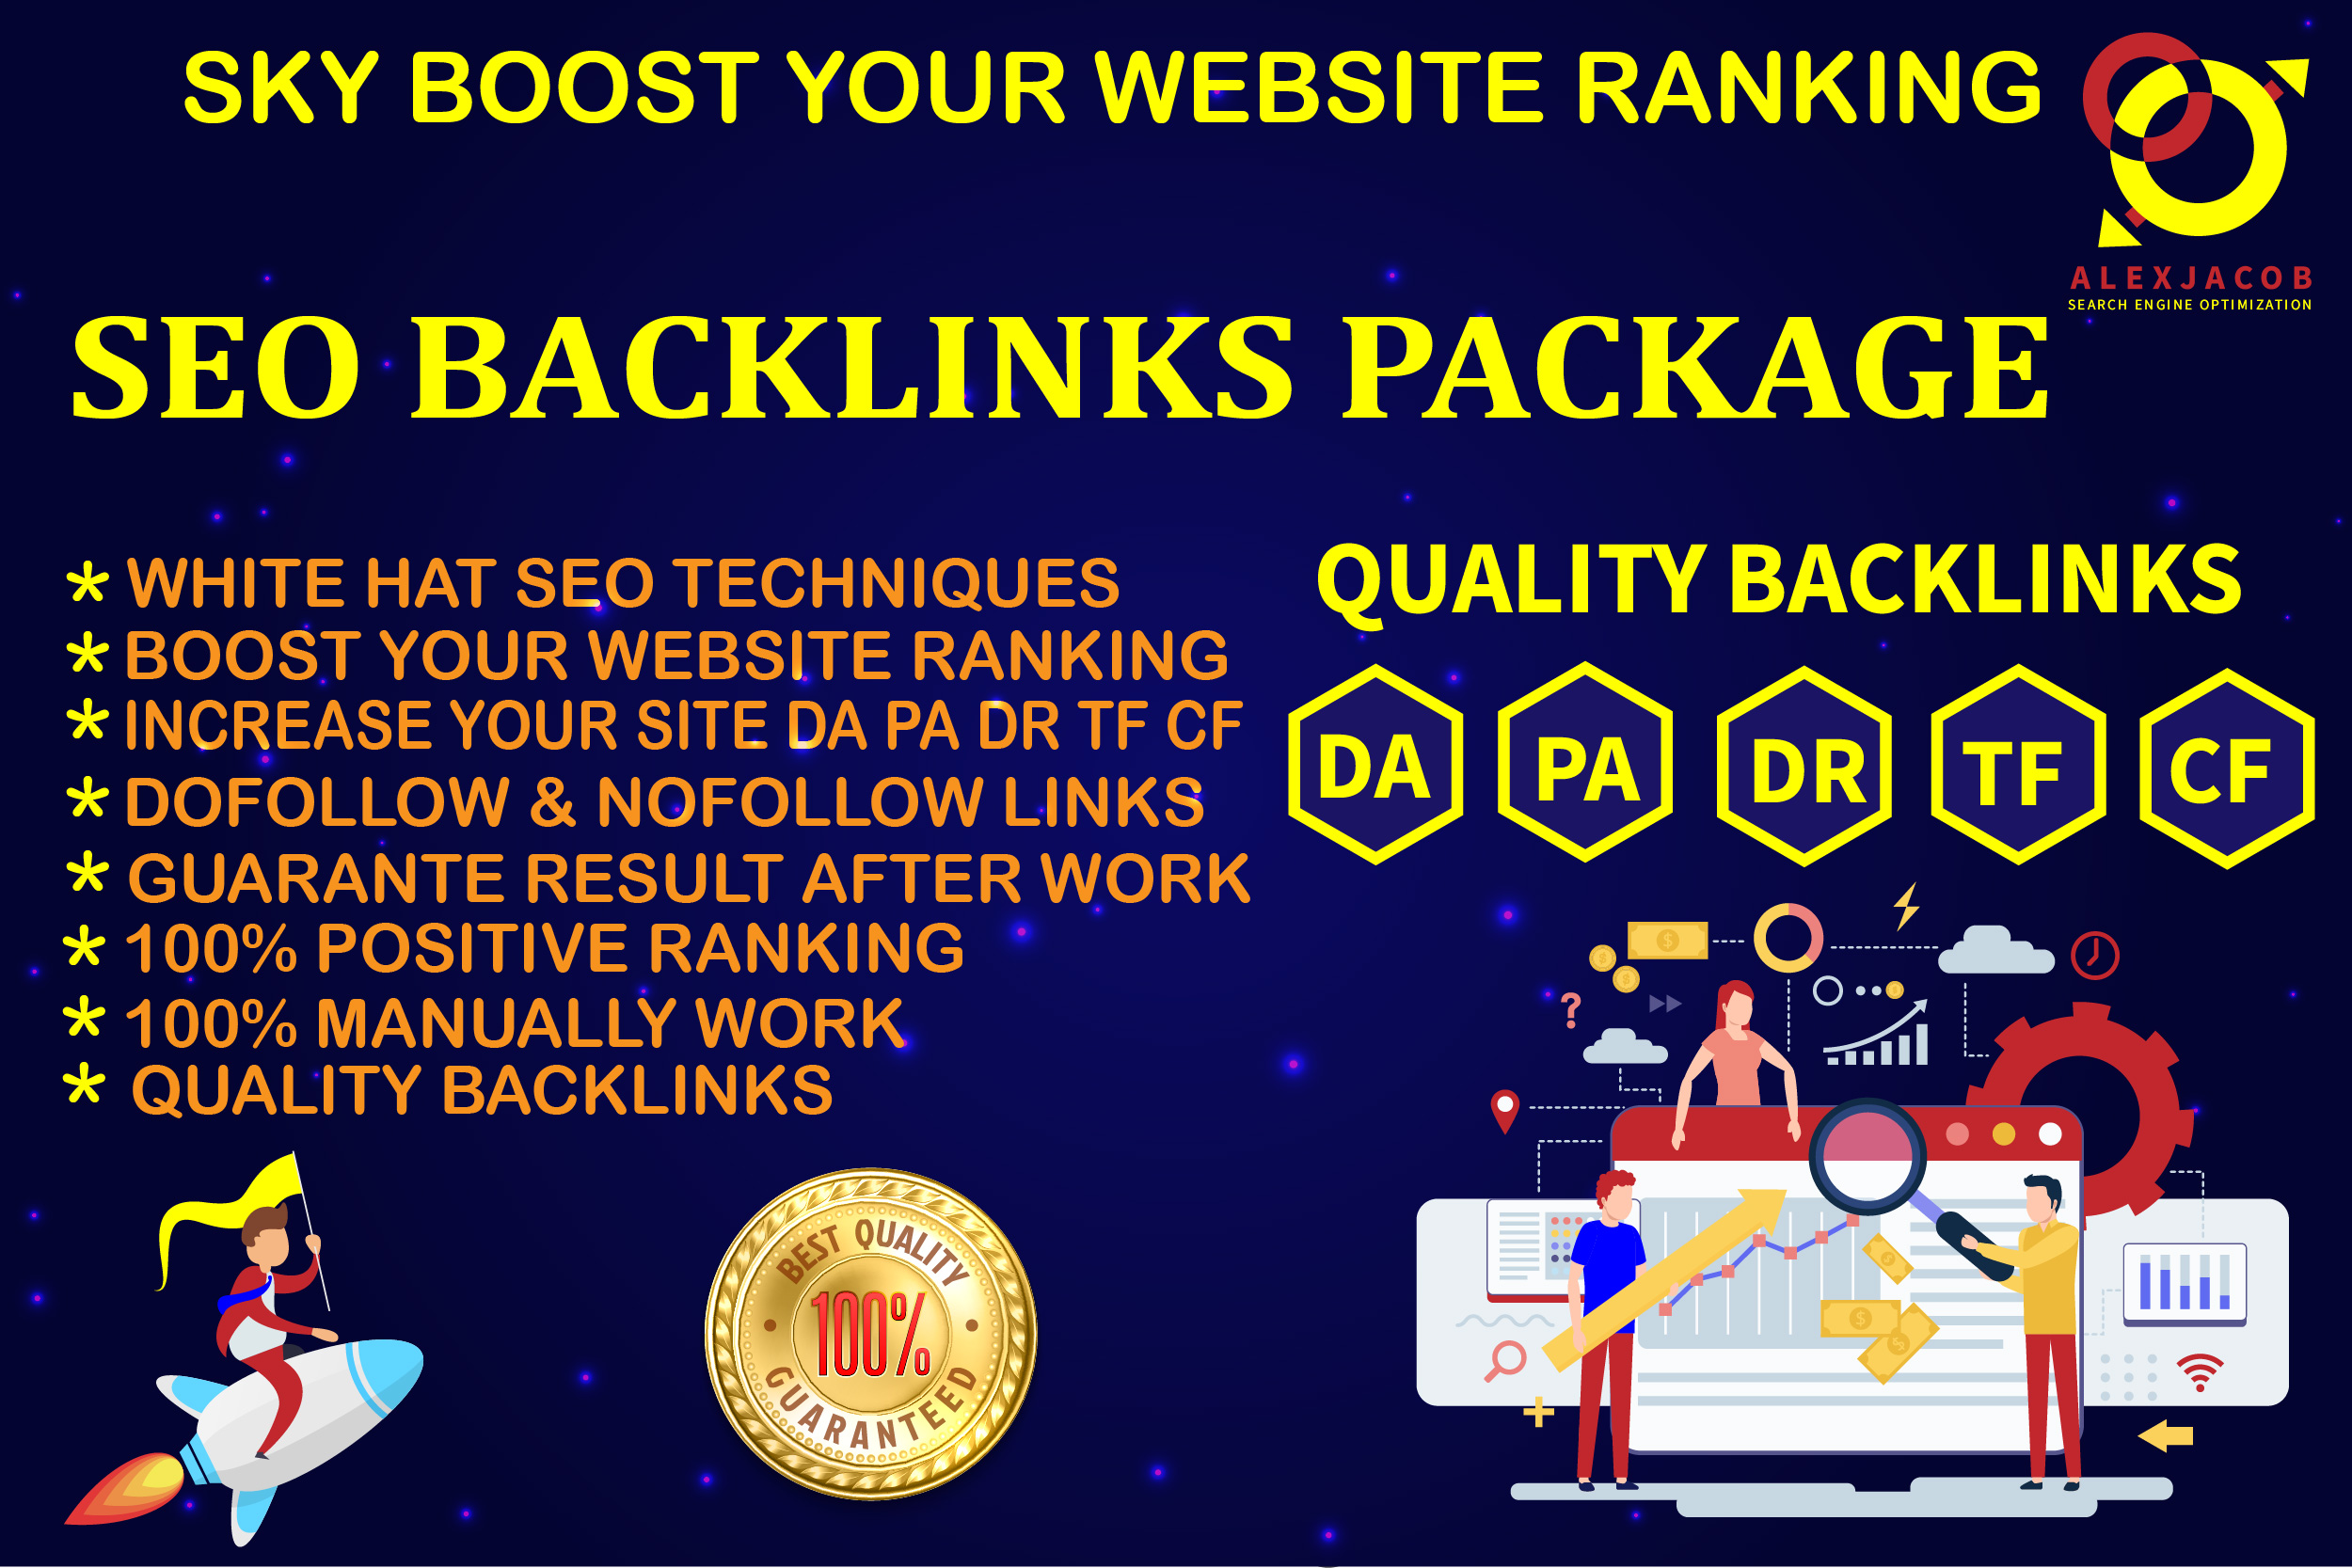 Sky Boost Your Website With High Quality SEO Permanent Monthly Backlinks Package